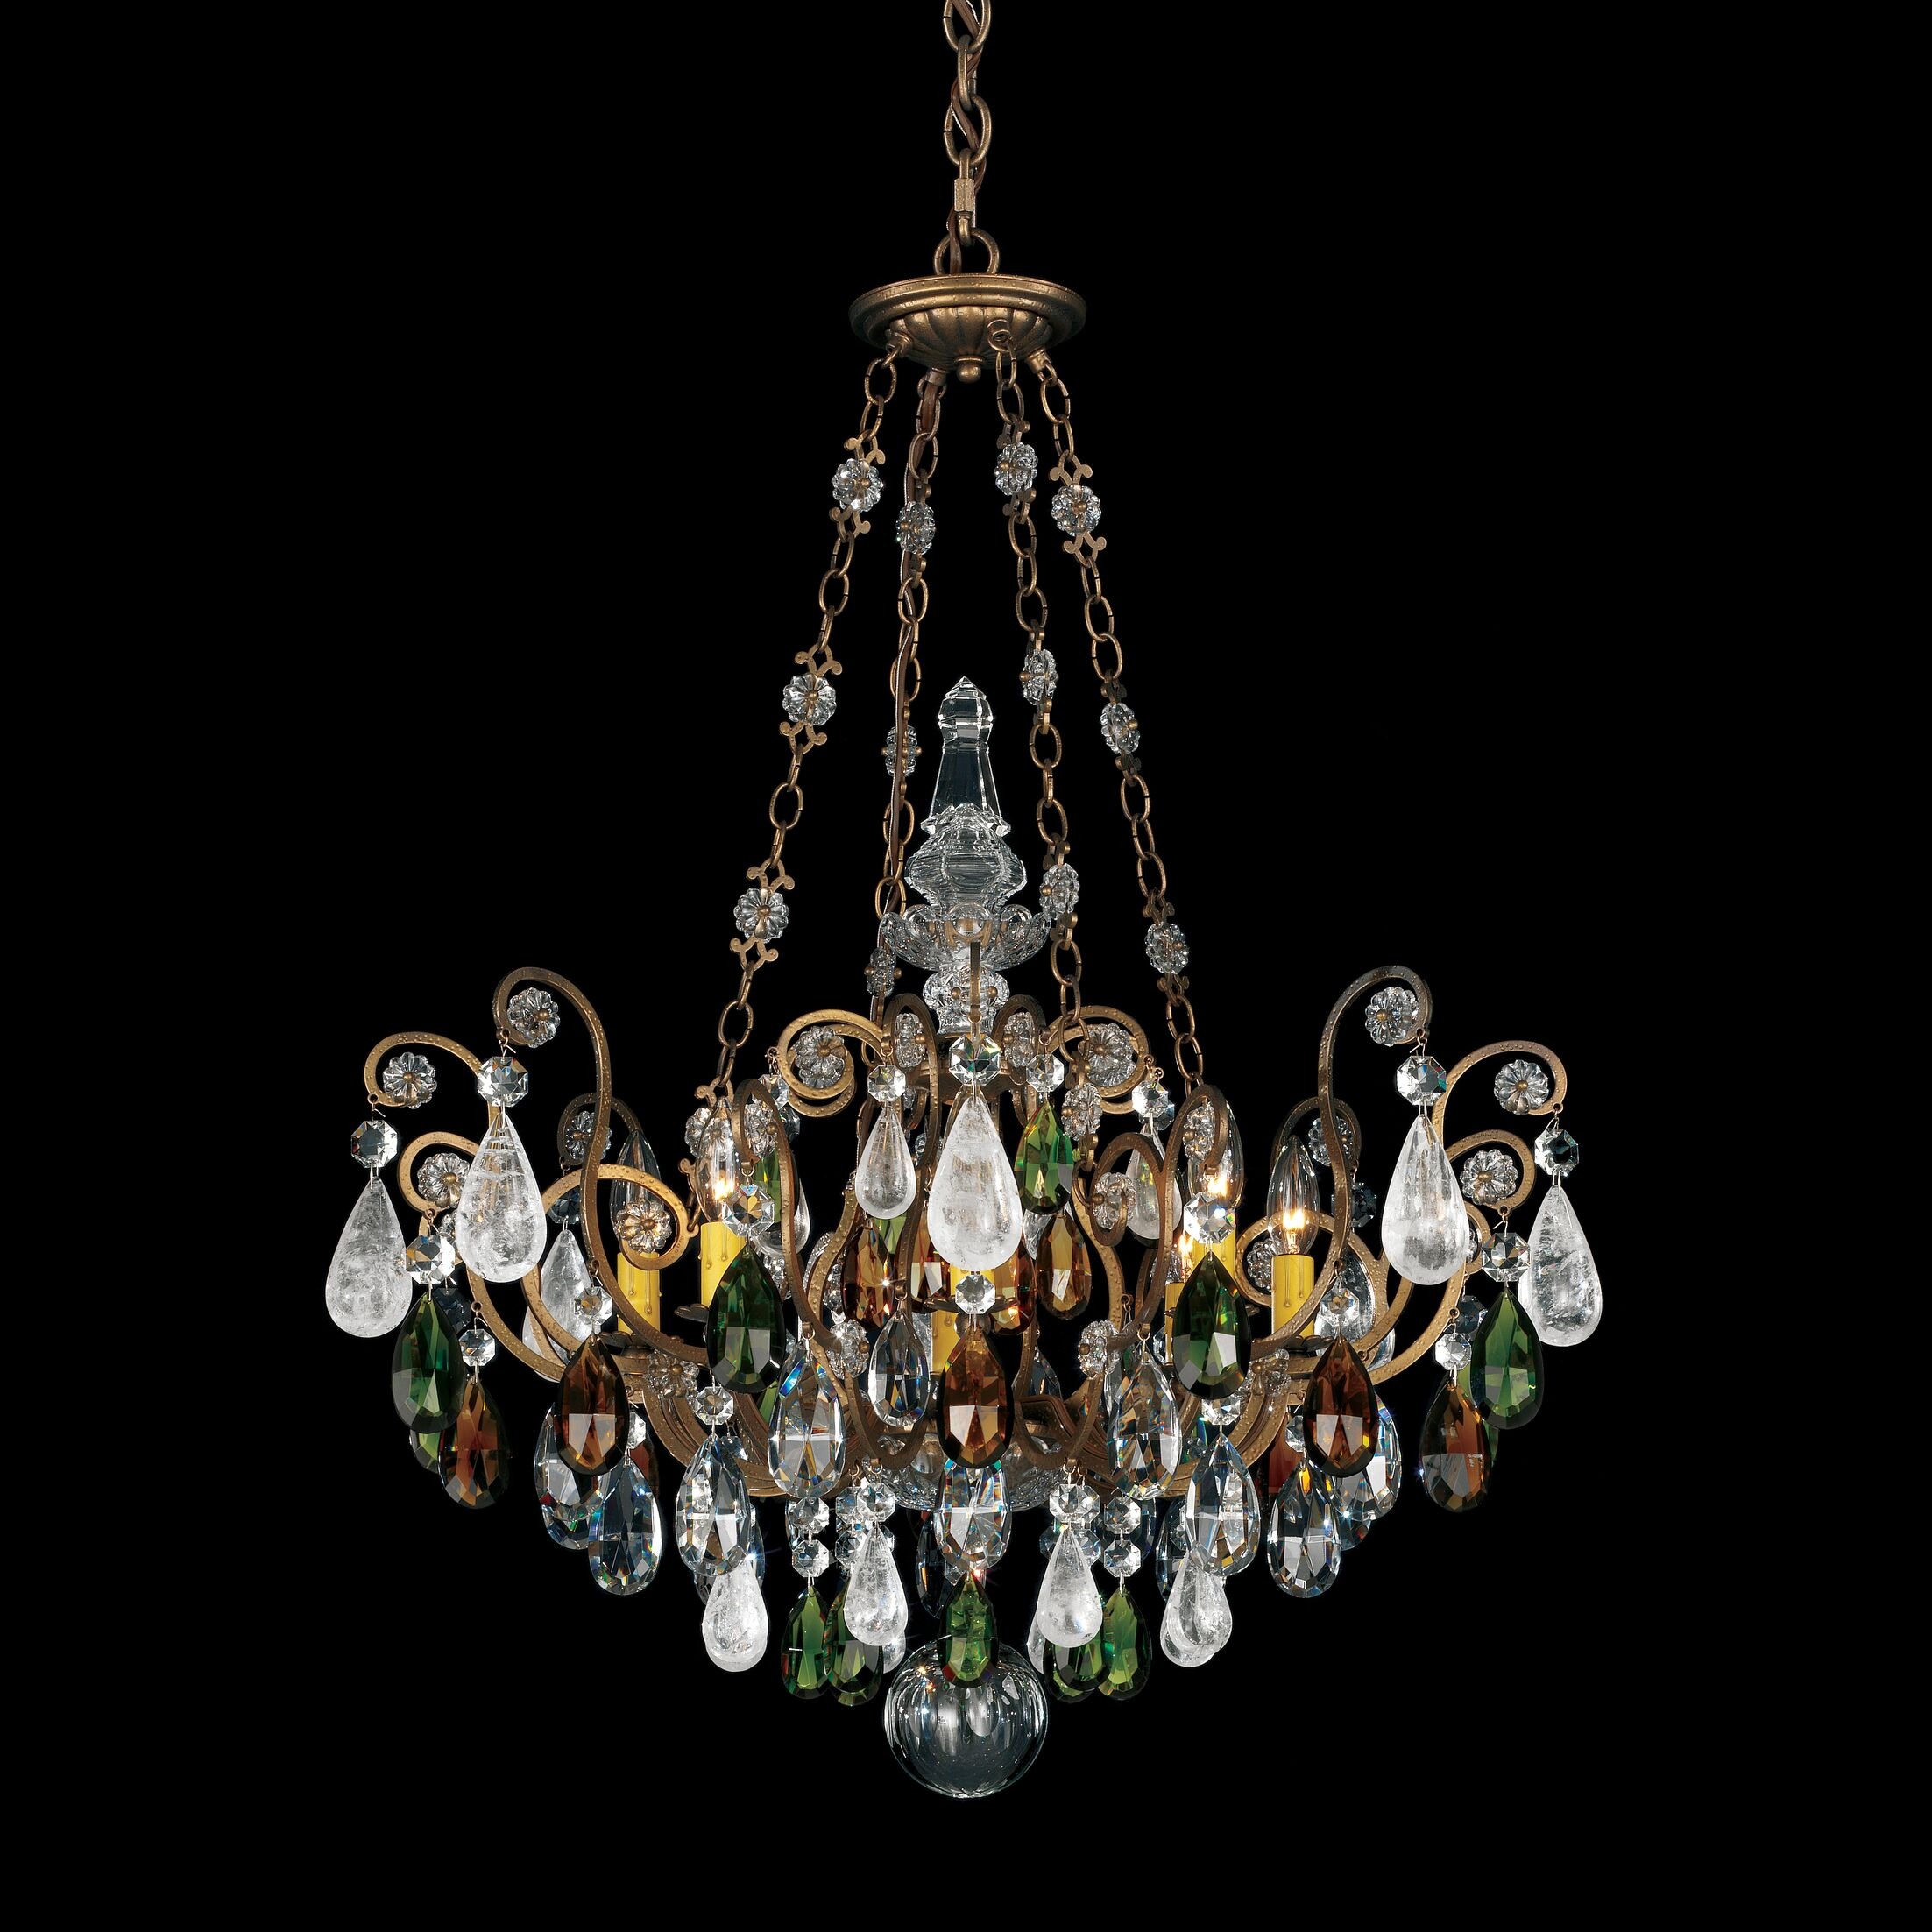 Renaissance Rock 8-Light Chandelier Finish / Crystal Color: Heirloom Gold / Combination of Olive and Smoke